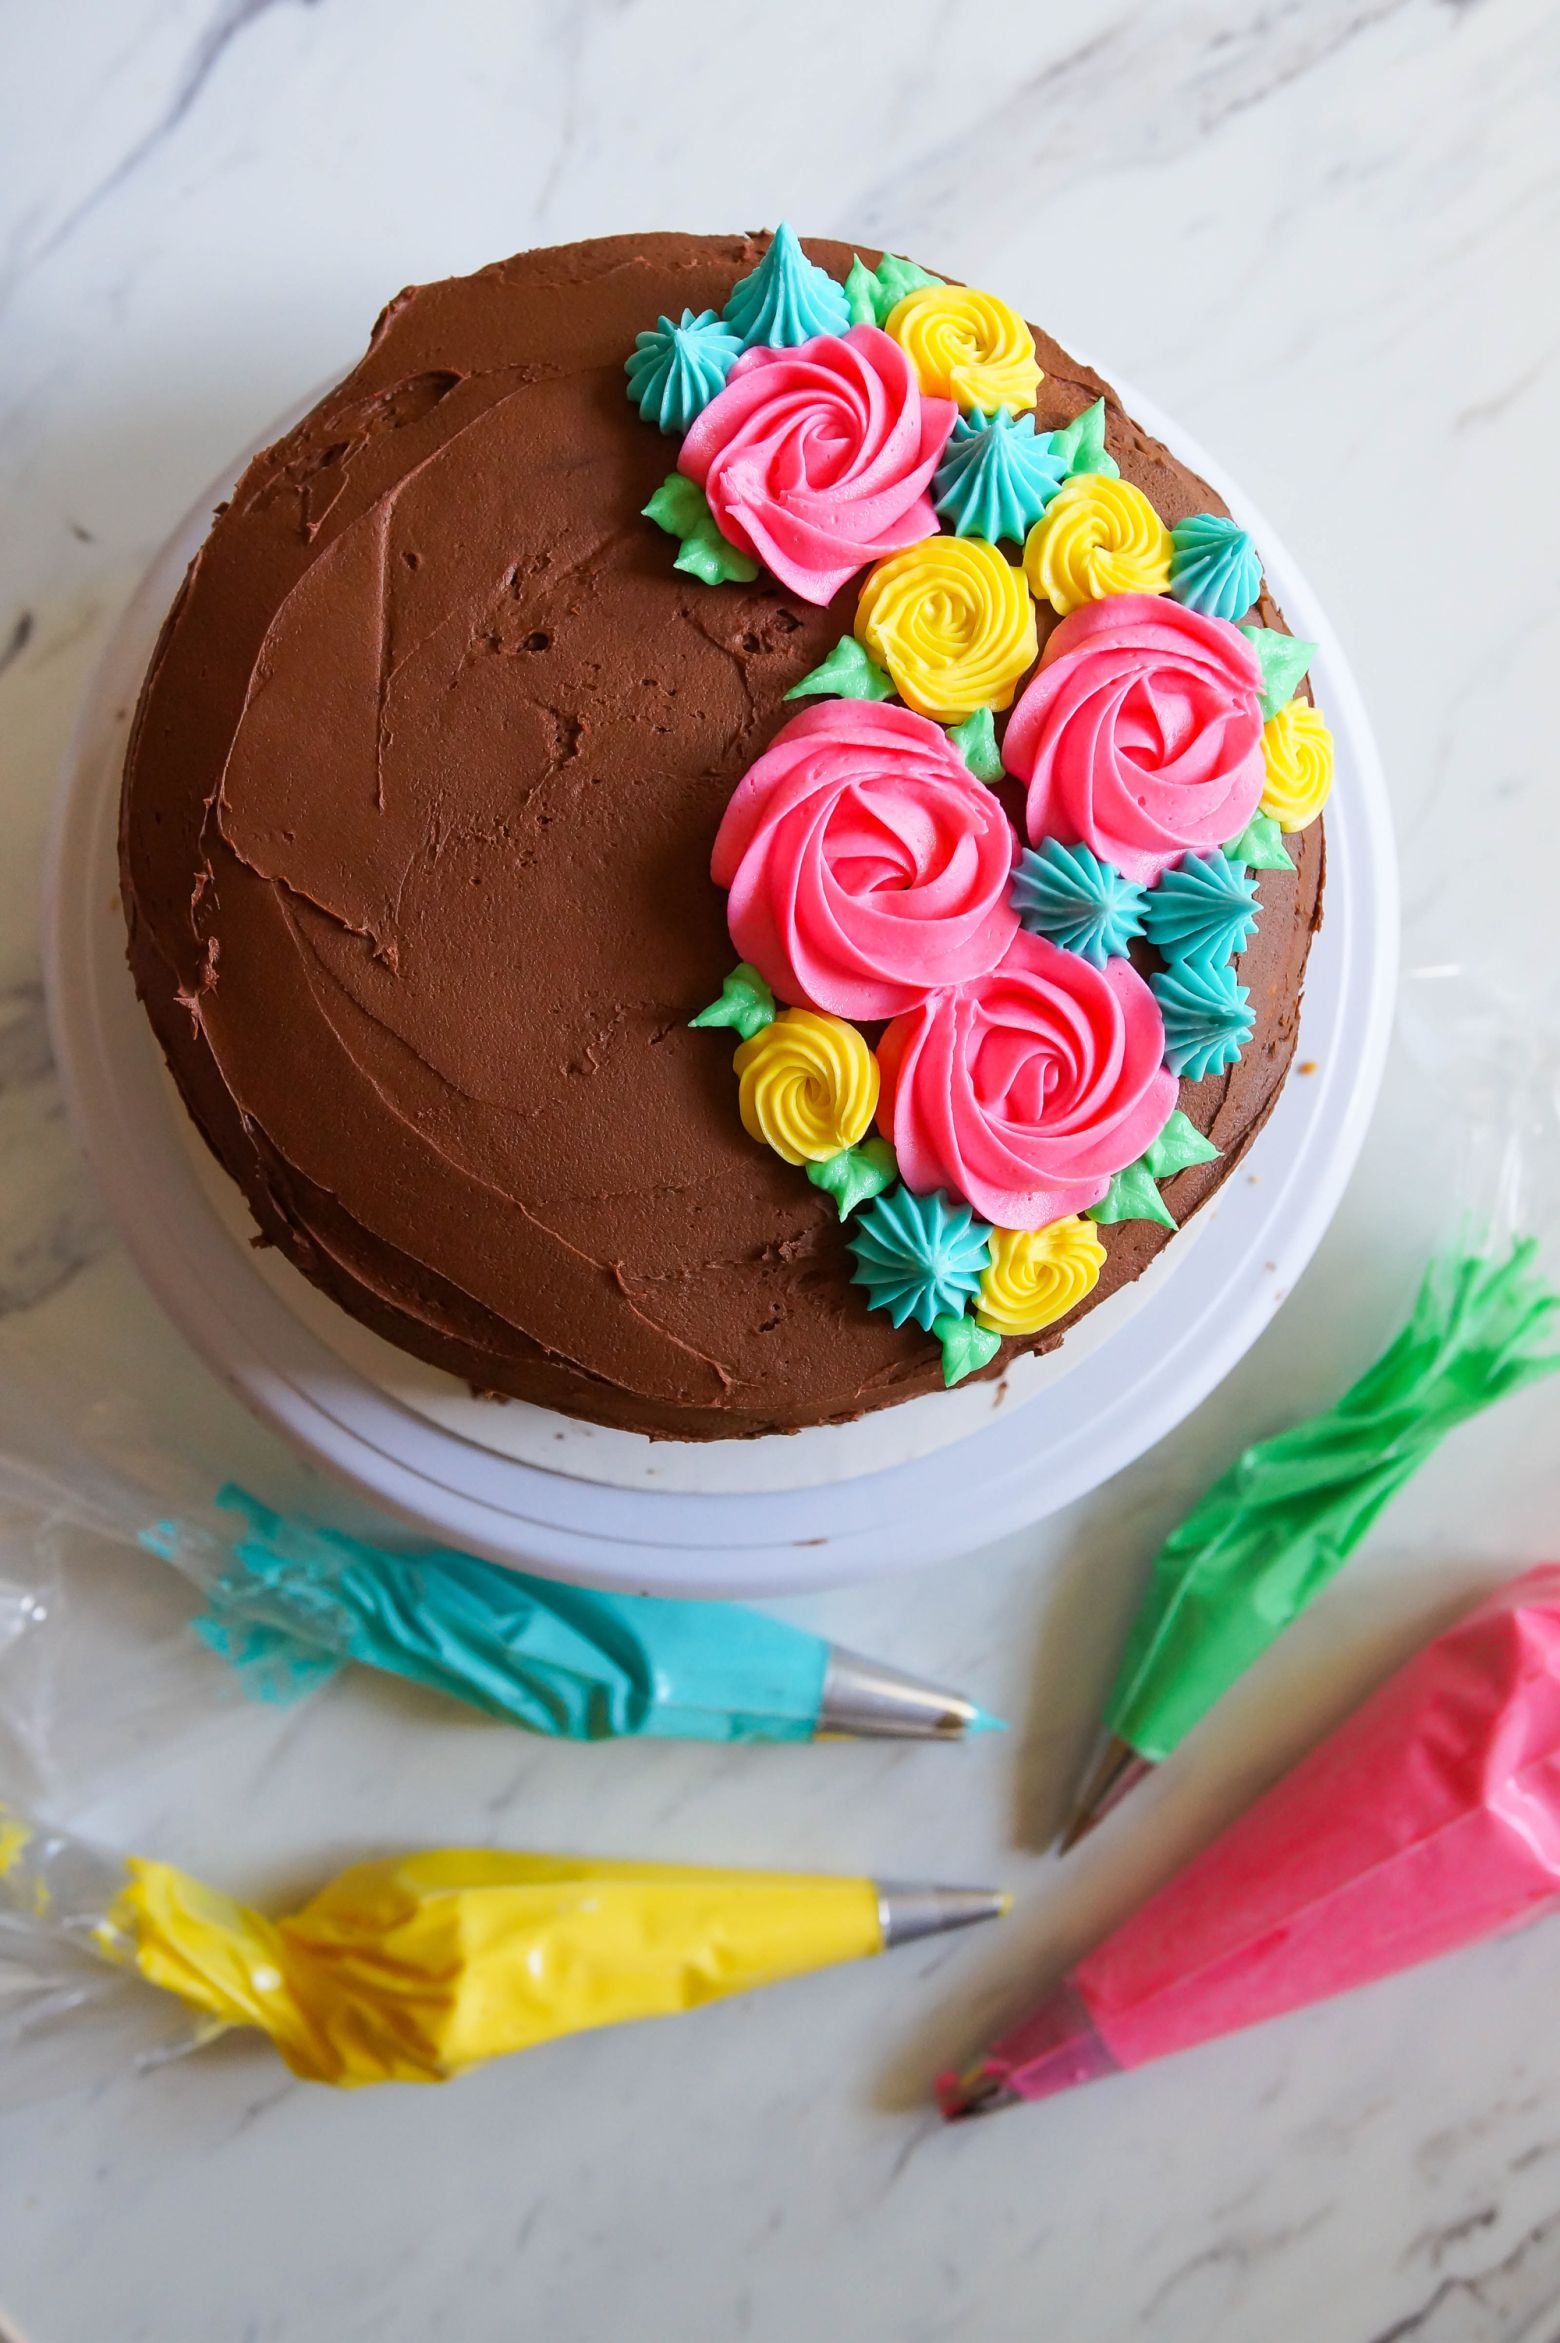 Cours Décoration Gateau Tips For Frosting Cakes And 4 Easy Ideas Glasur Pinterest